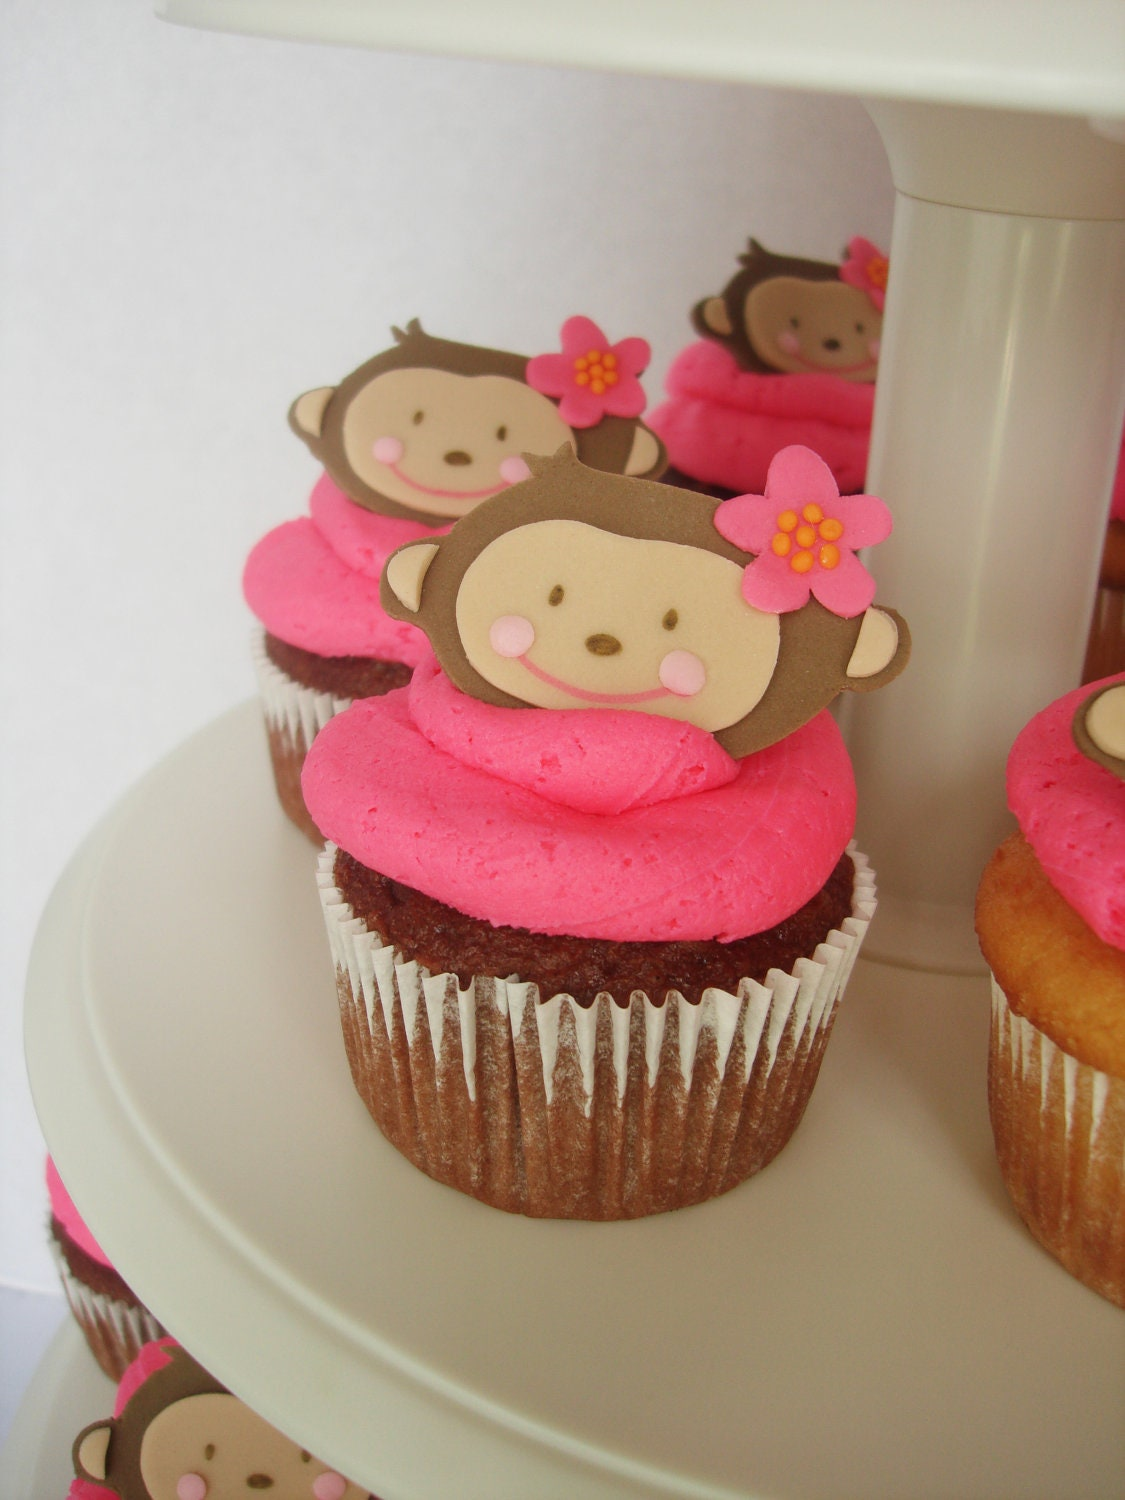 Monkey love cupcakes - photo#19